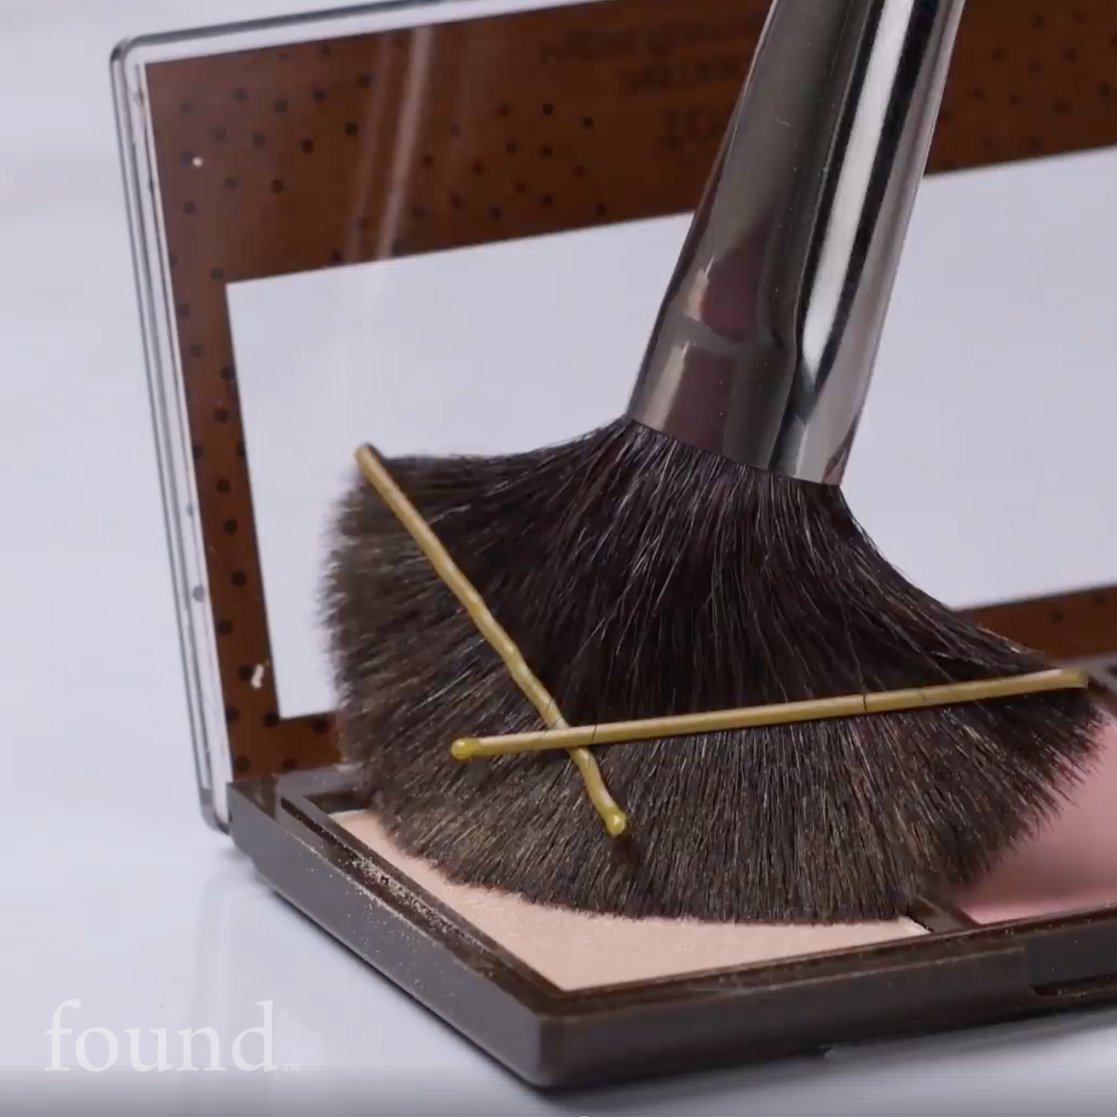 found - brush pins.png